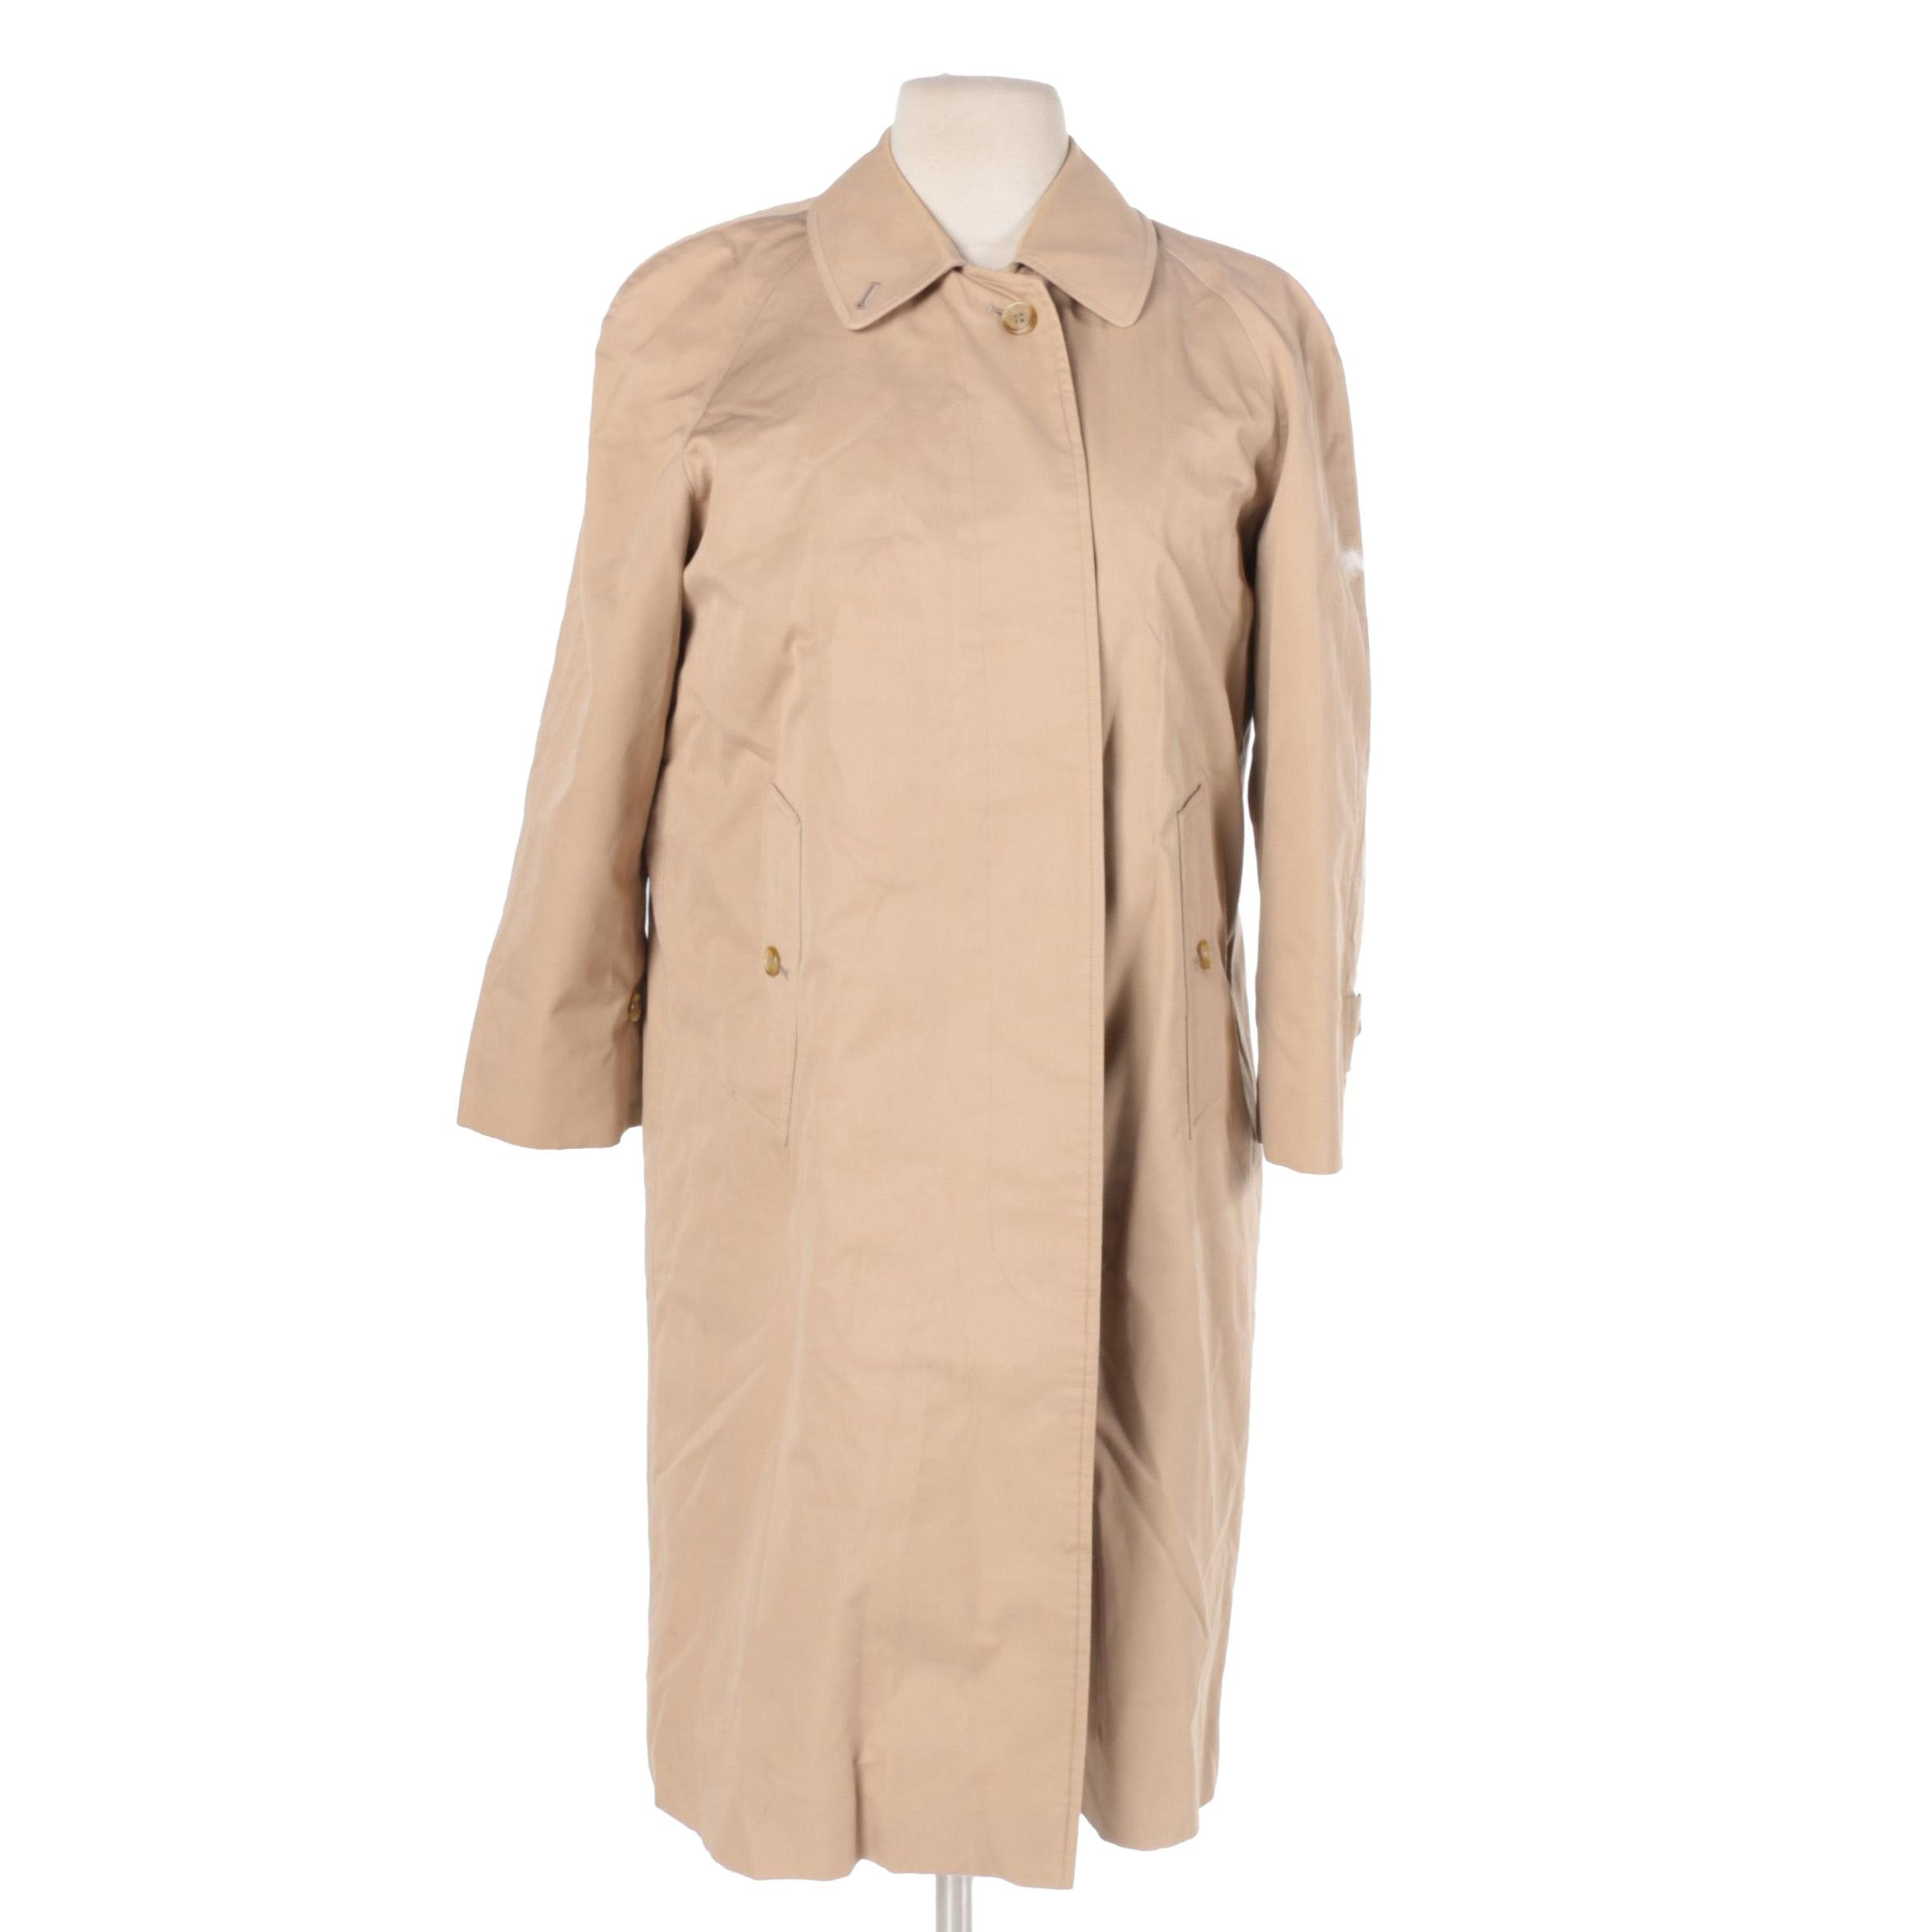 Women's Vintage Burberry Coat with Removable Liner